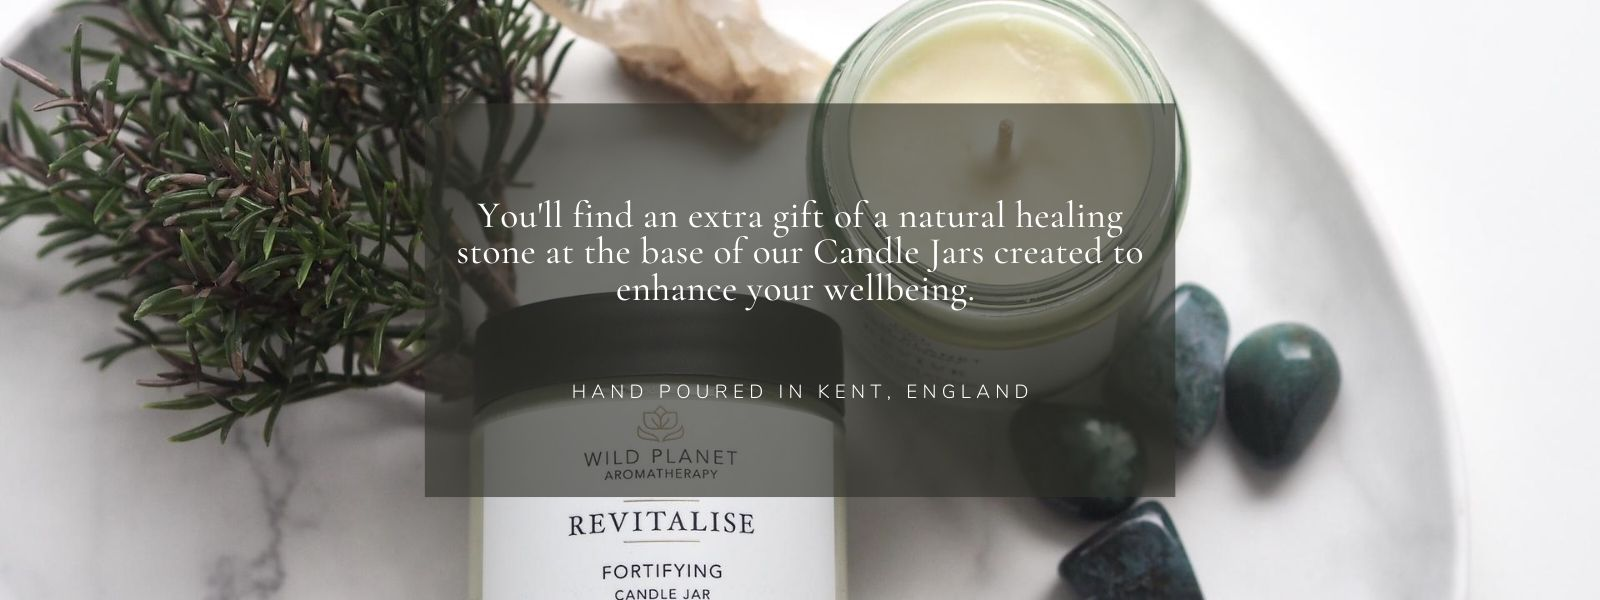 Revitalise Candle Jars with Green Moss Agate next to rosemary on marble tray by Wild Planet Aromatherapy